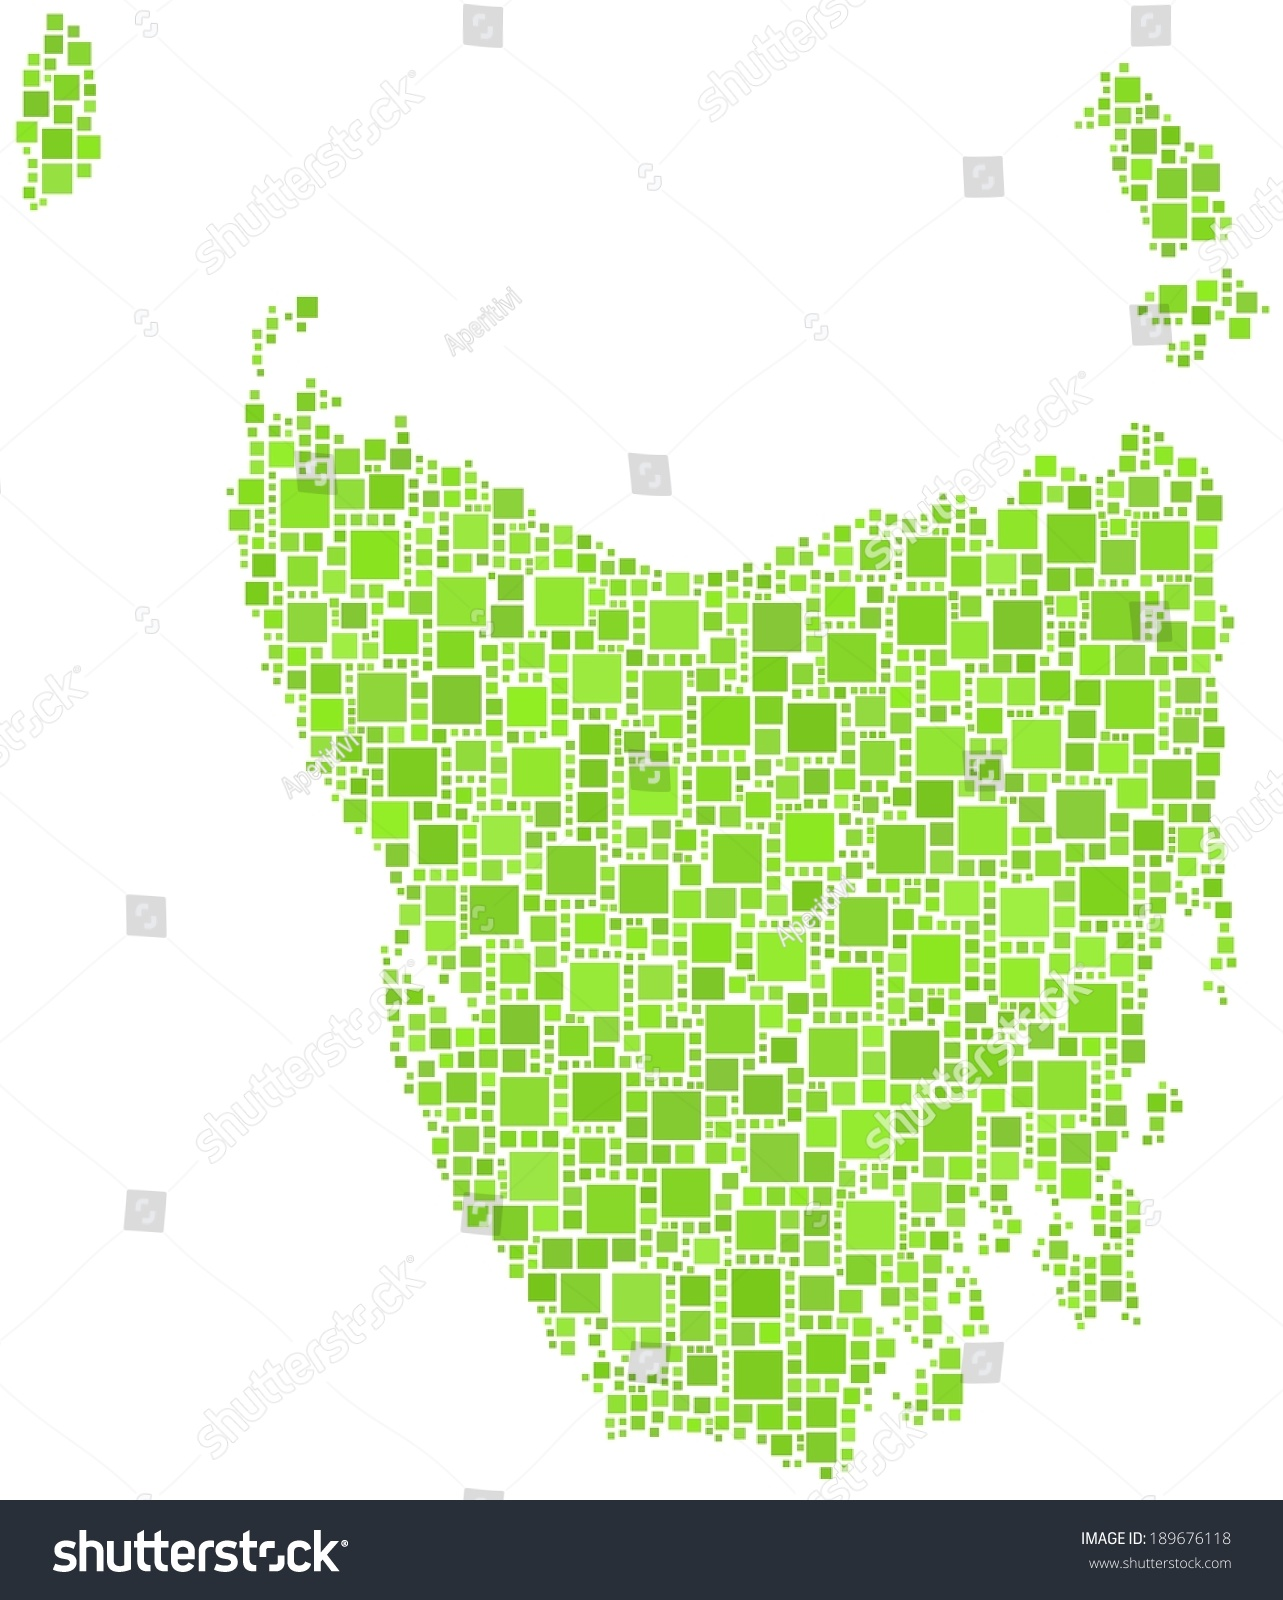 Was Tasmania Joined To Australia Stock Vector Map Of The State Of Tasmania